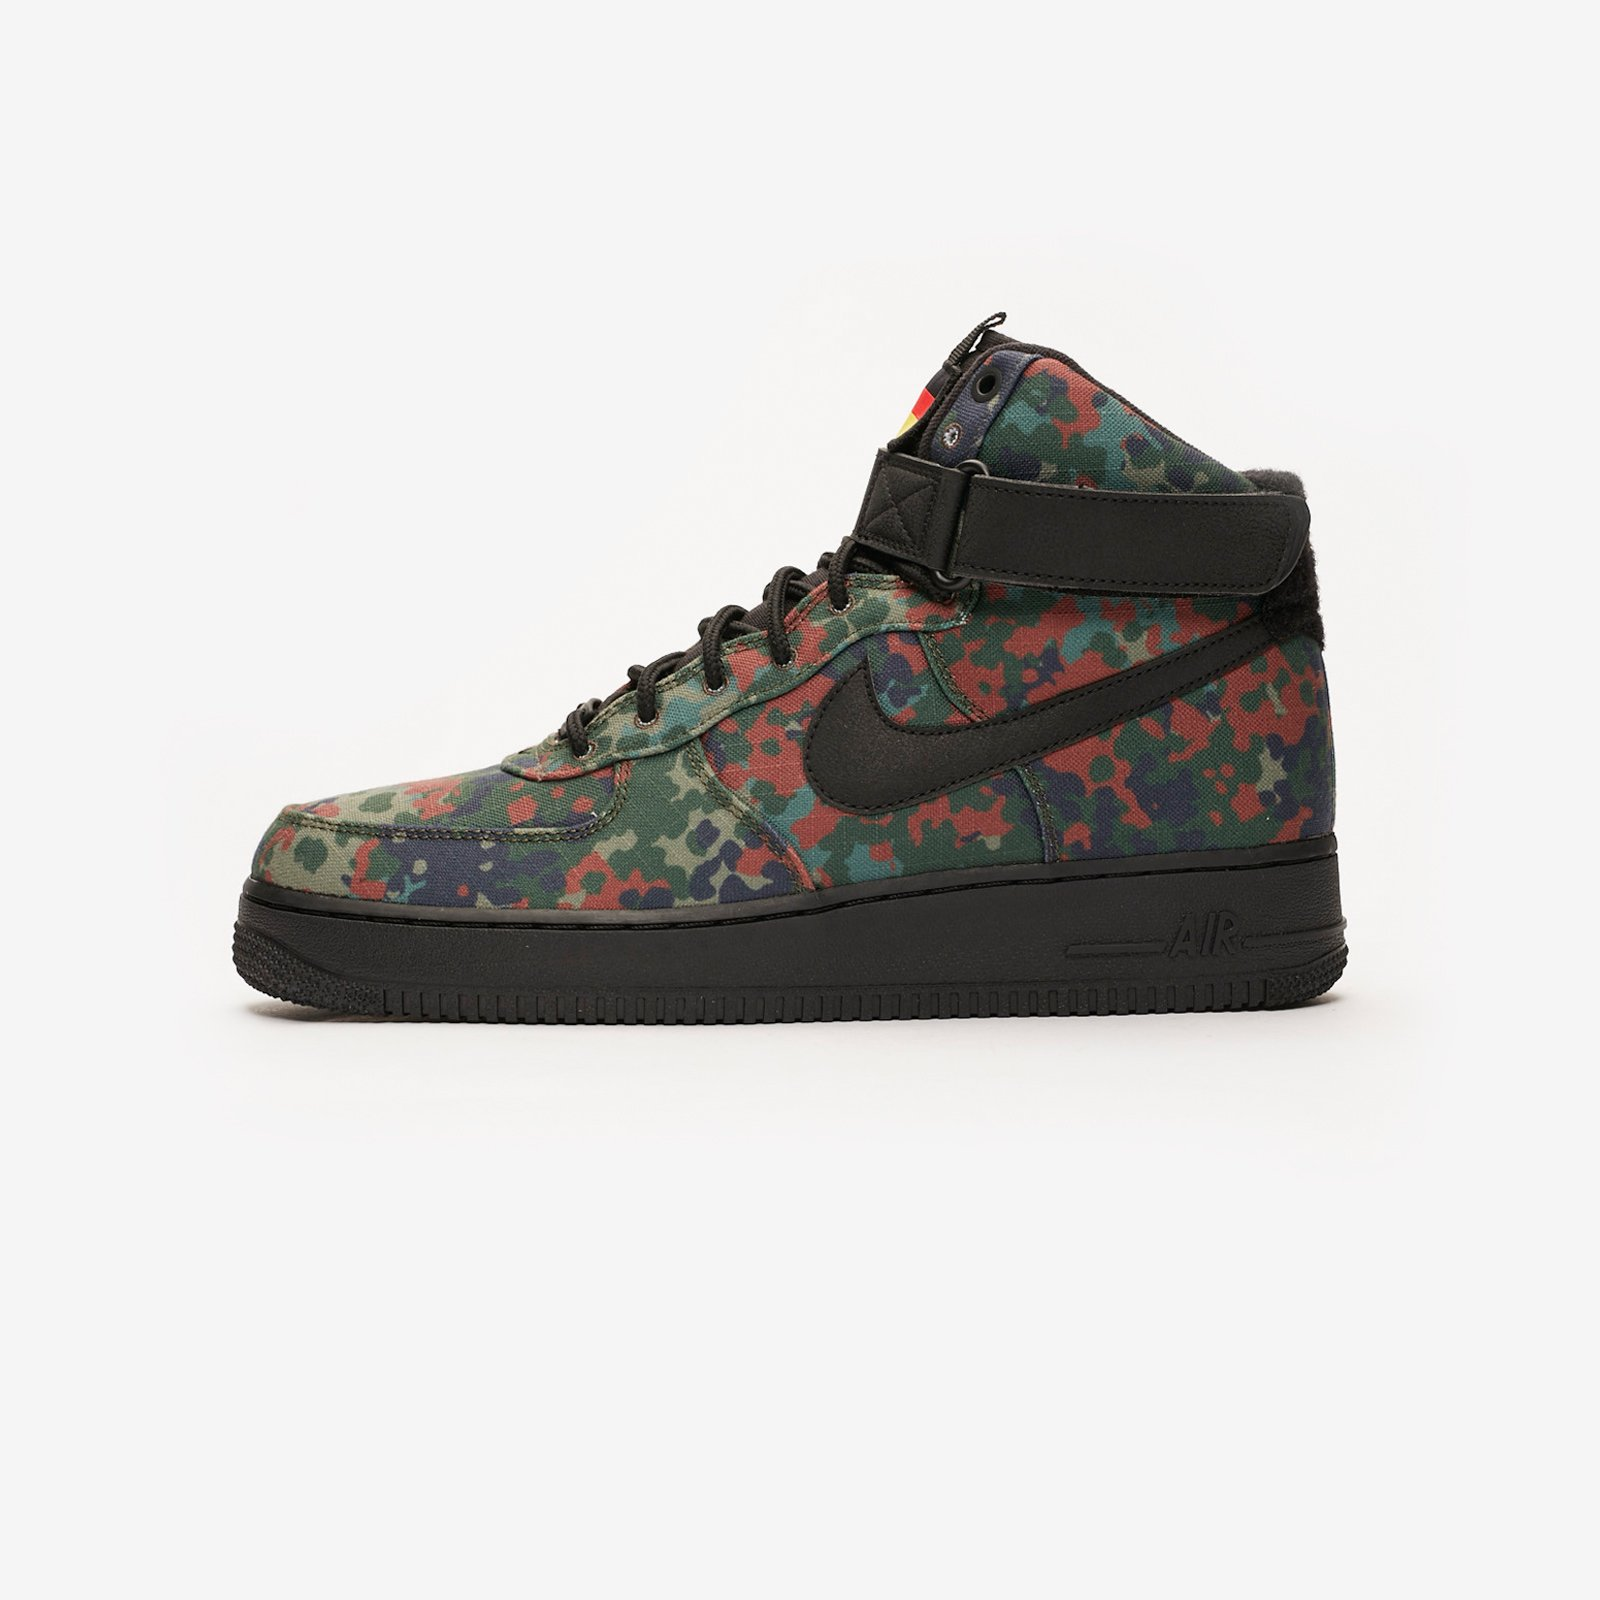 Nike Air Force 1 High 07 Lv8 Bq1669 300 Sneakersnstuff I